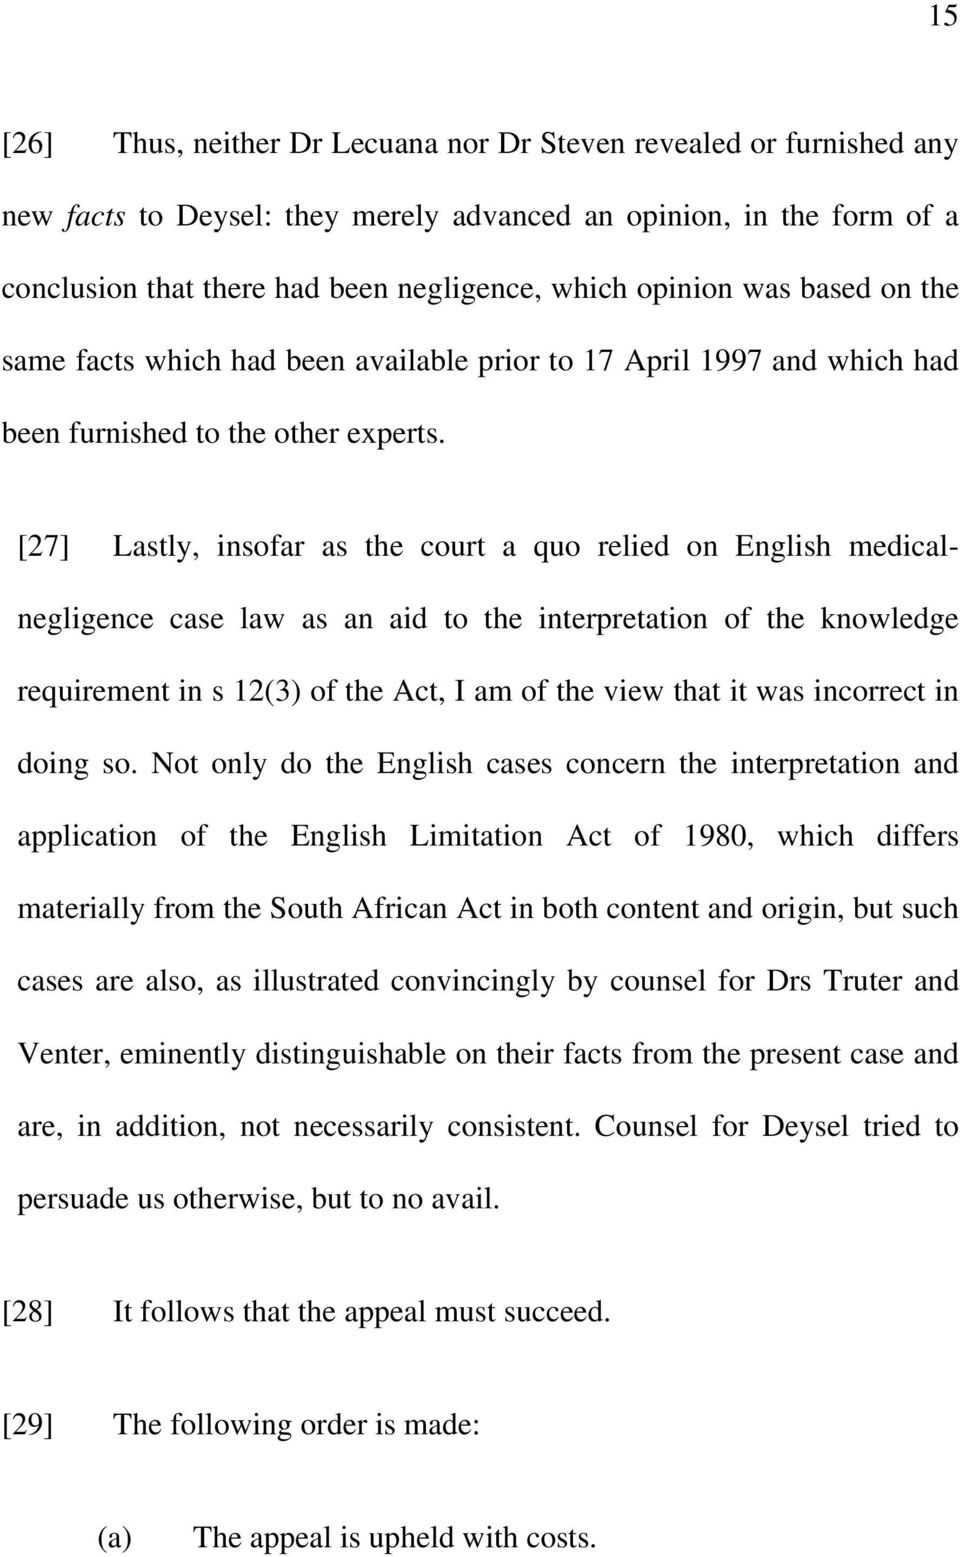 [27] Lastly, insofar as the court a quo relied on English medicalnegligence case law as an aid to the interpretation of the knowledge requirement in s 12(3) of the Act, I am of the view that it was